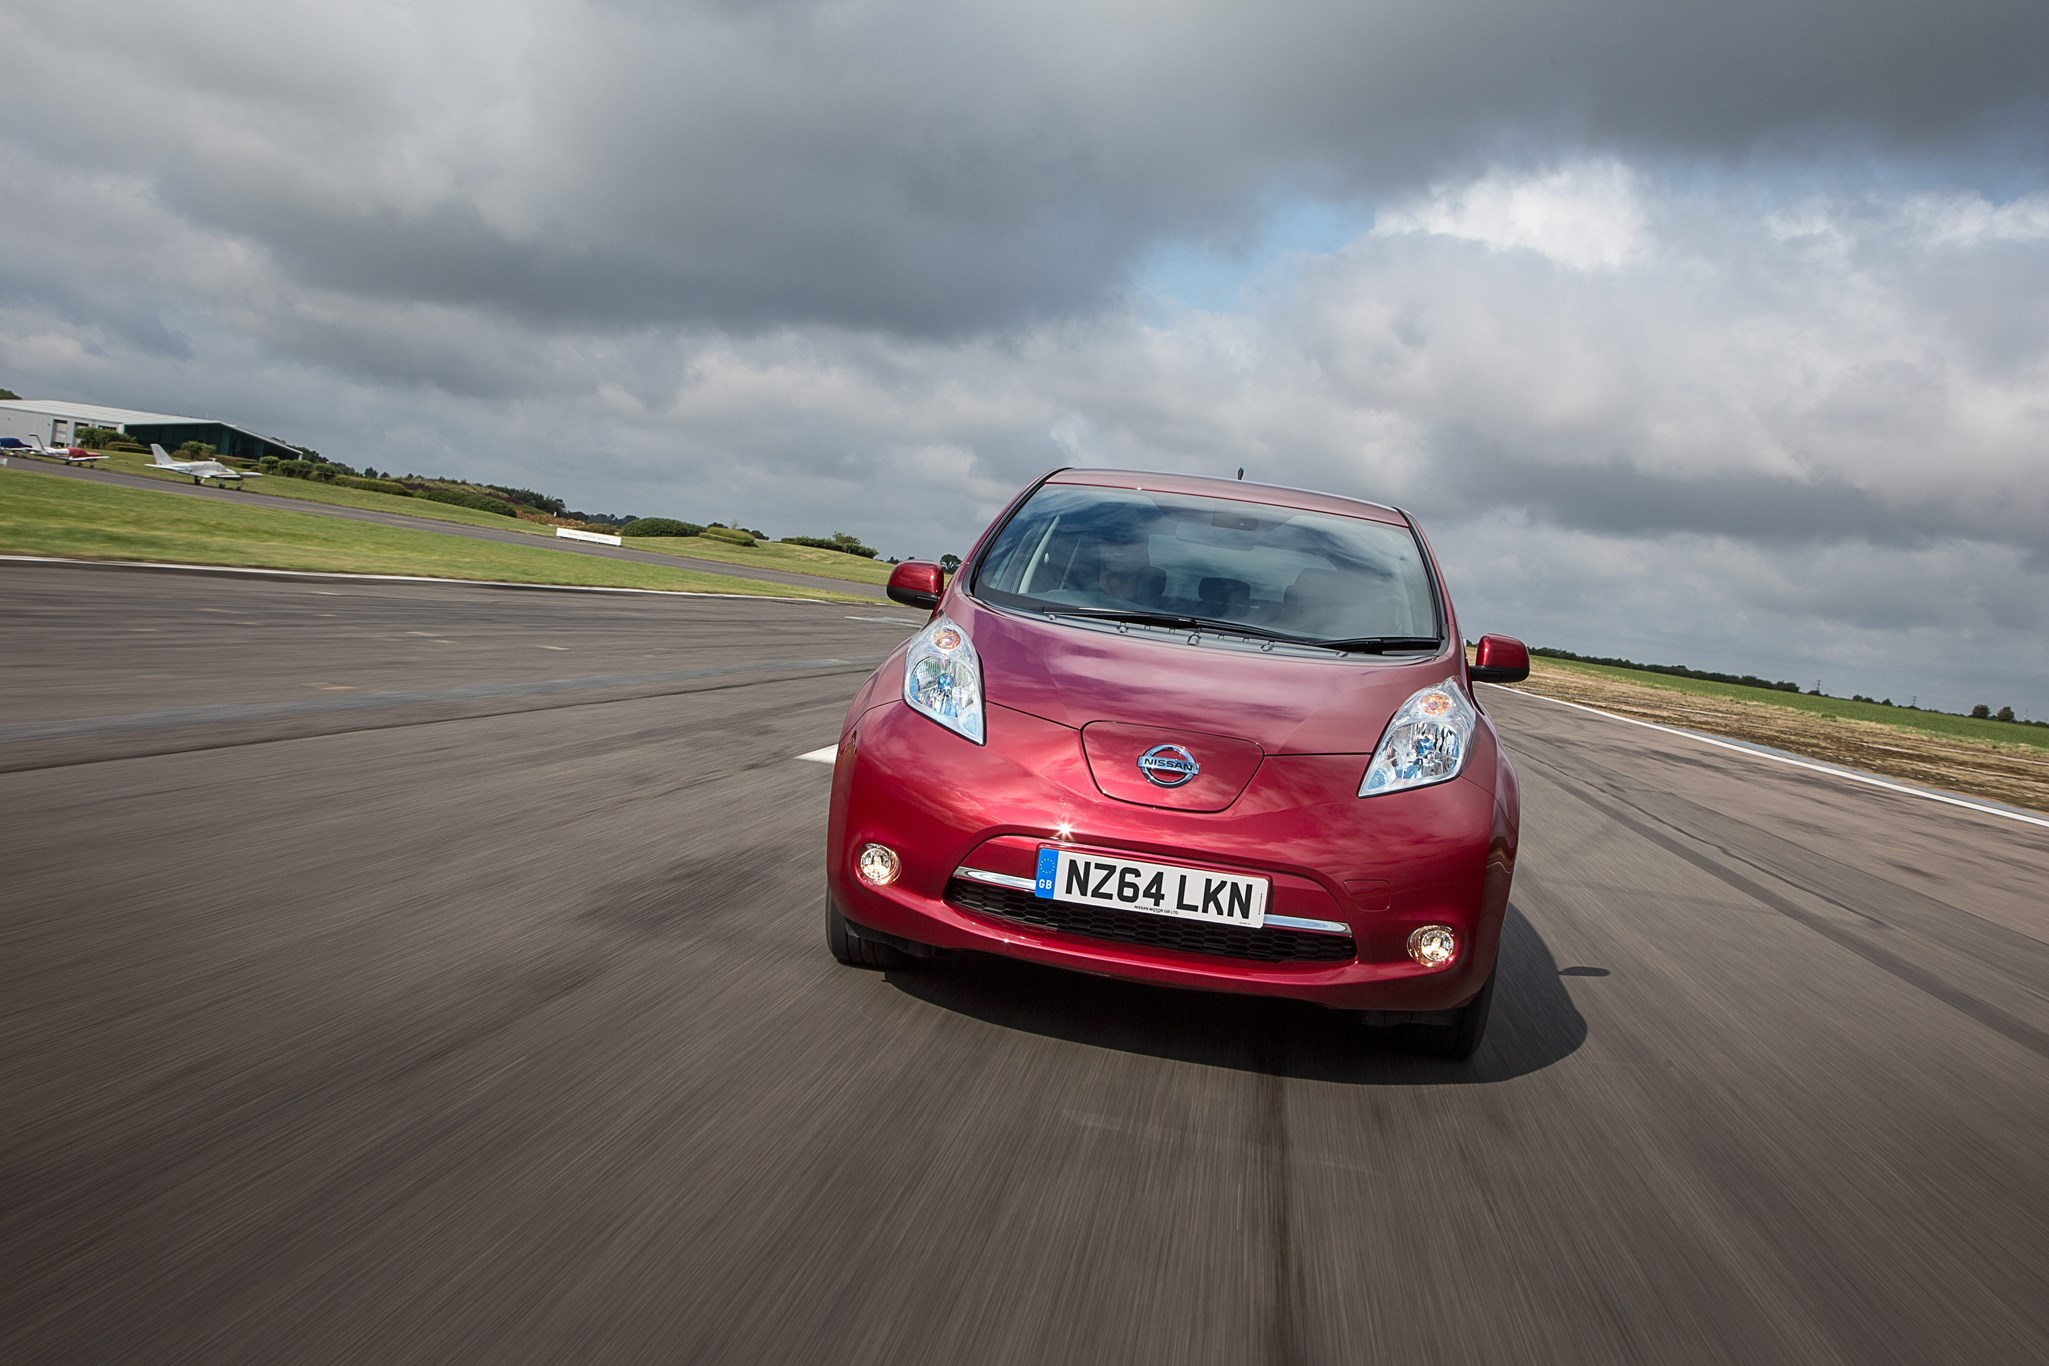 nissan taxi car leaf electric video news gallery evs trials vehicle photo enter